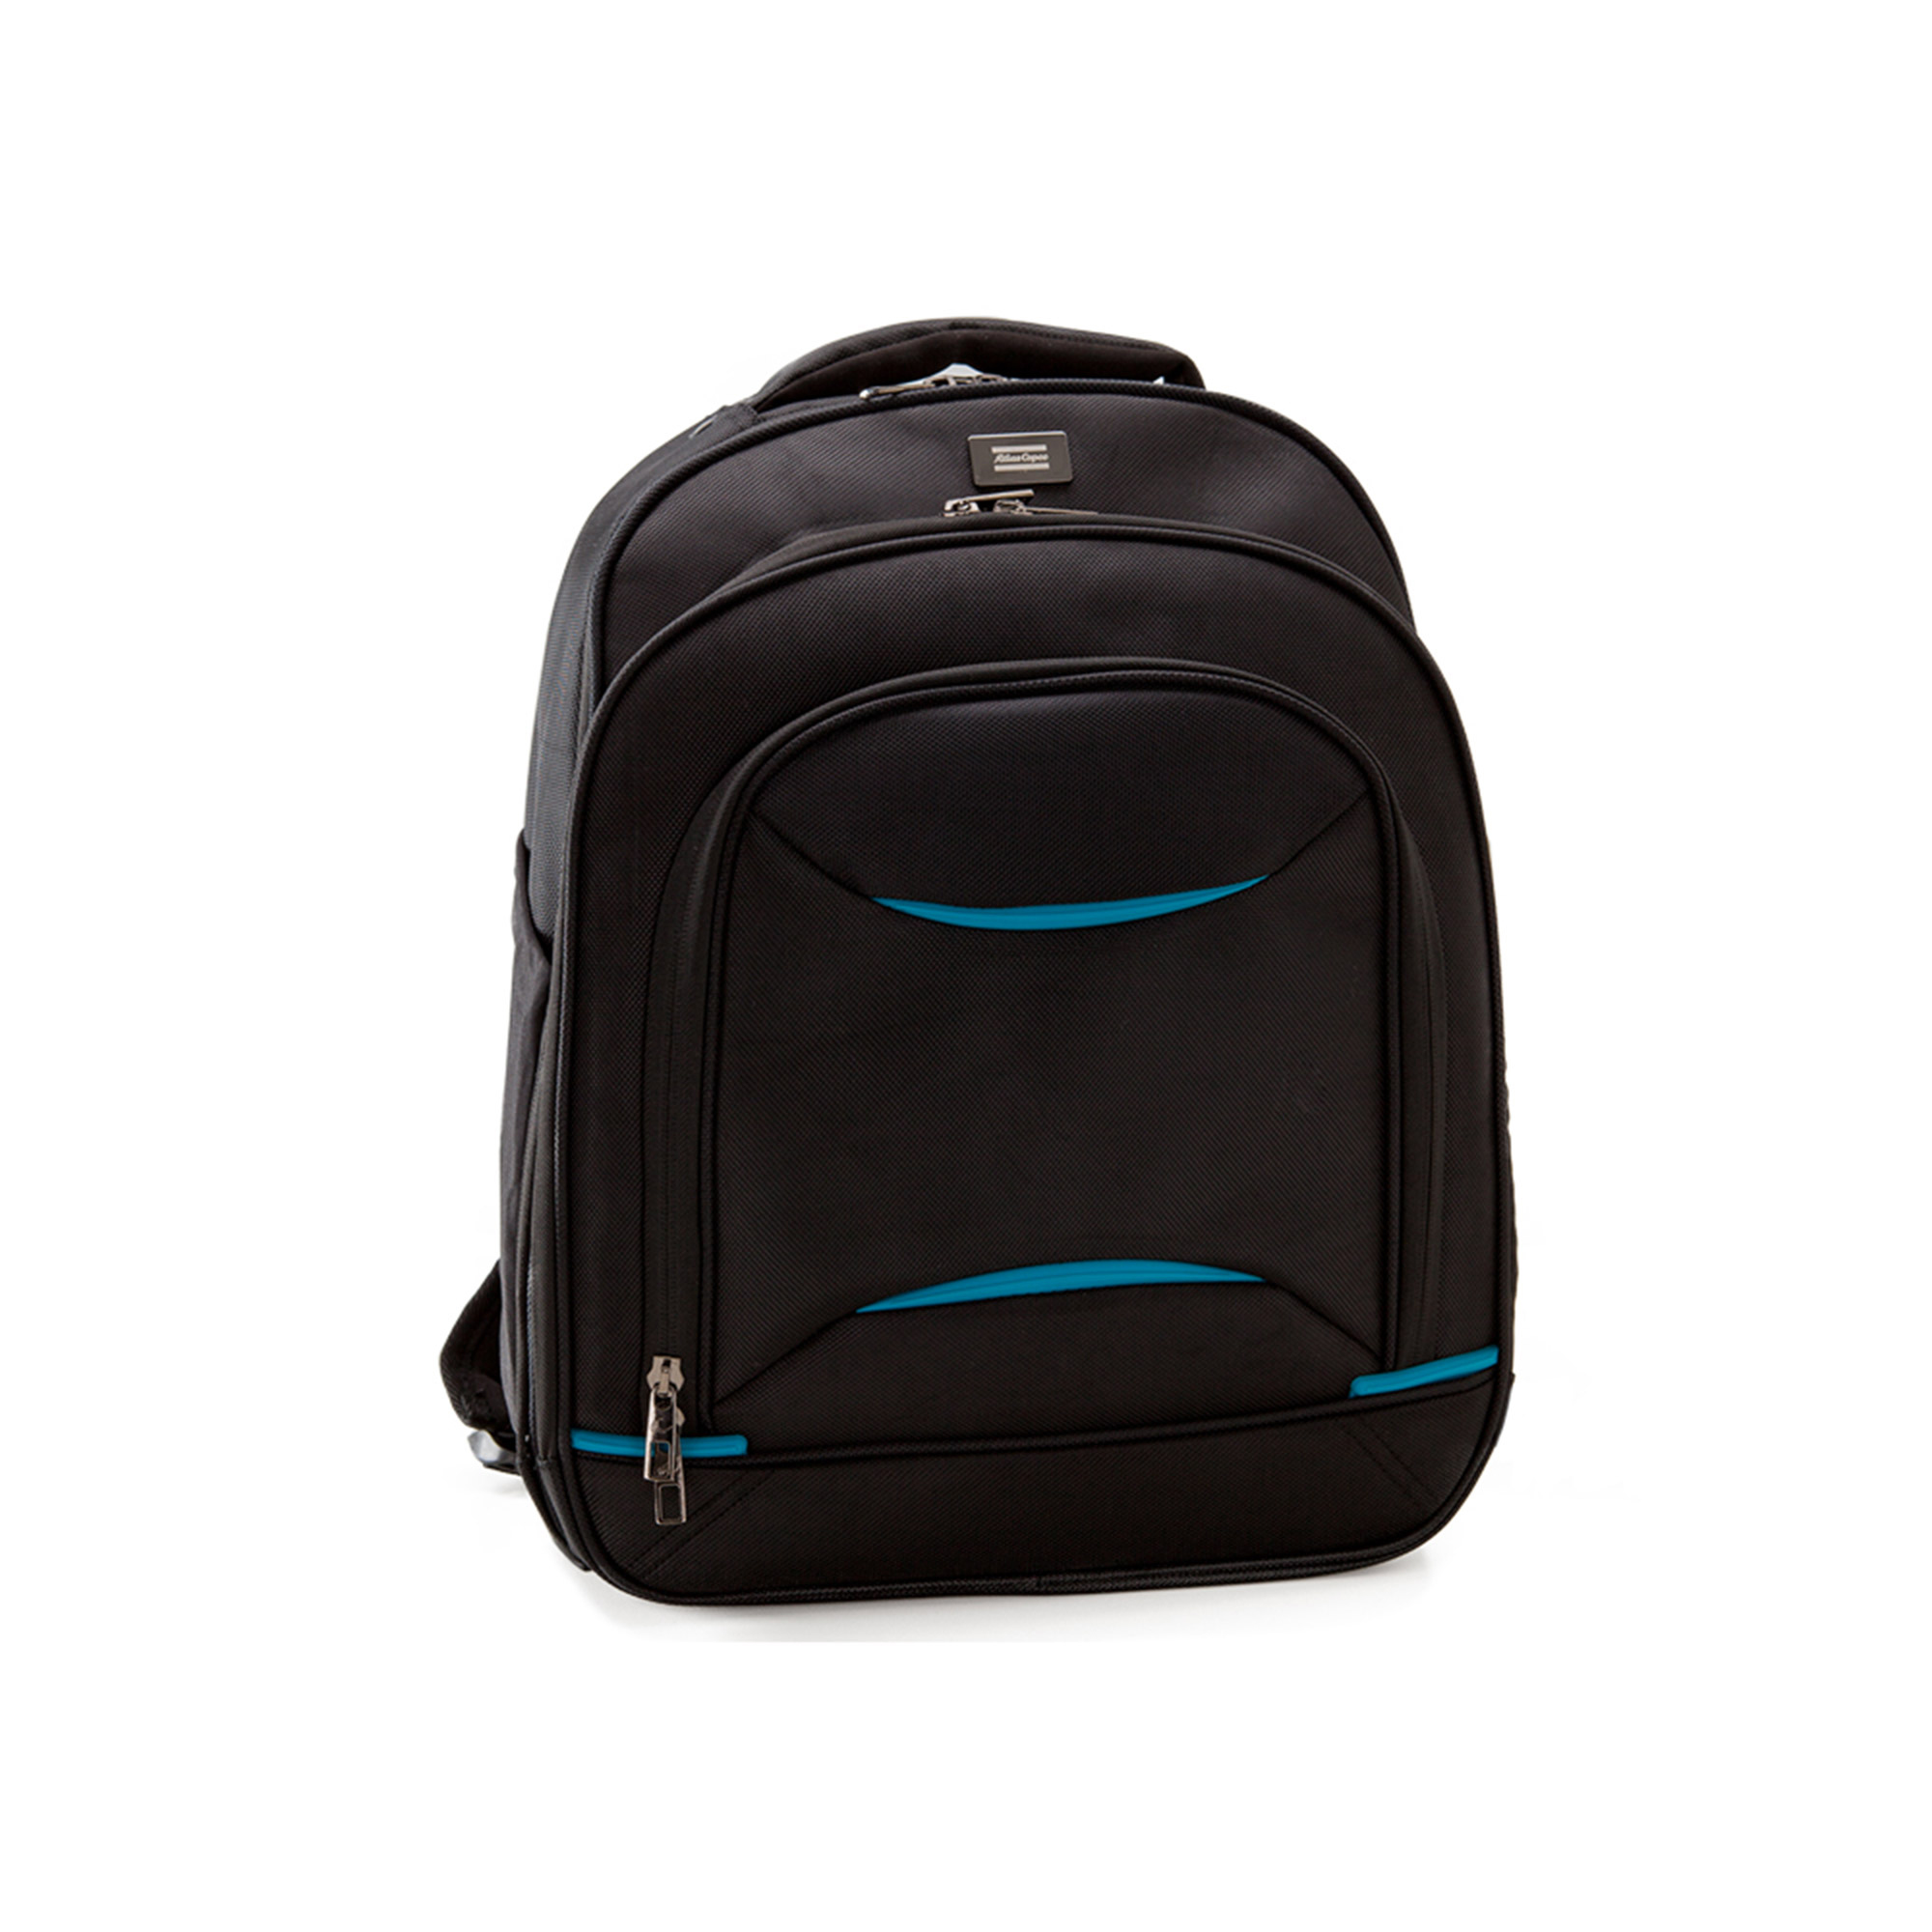 In line with Atlas Copco sustainable manufacturing principles, this trend conscious computer backpack is made to take the rigorous conditions of busy professional people's lives. It has a safe laptop compartment, an organizer section and several other compartments and partitions. Pockets for water bottle and cable accessories are easily accessible. Other features include a security pocket, trolley strap and a magnetic earphone holder. Use this bag when you're commuting, travelling and when you need a high-performance carrying accessory. Watch the video. See for yourself.